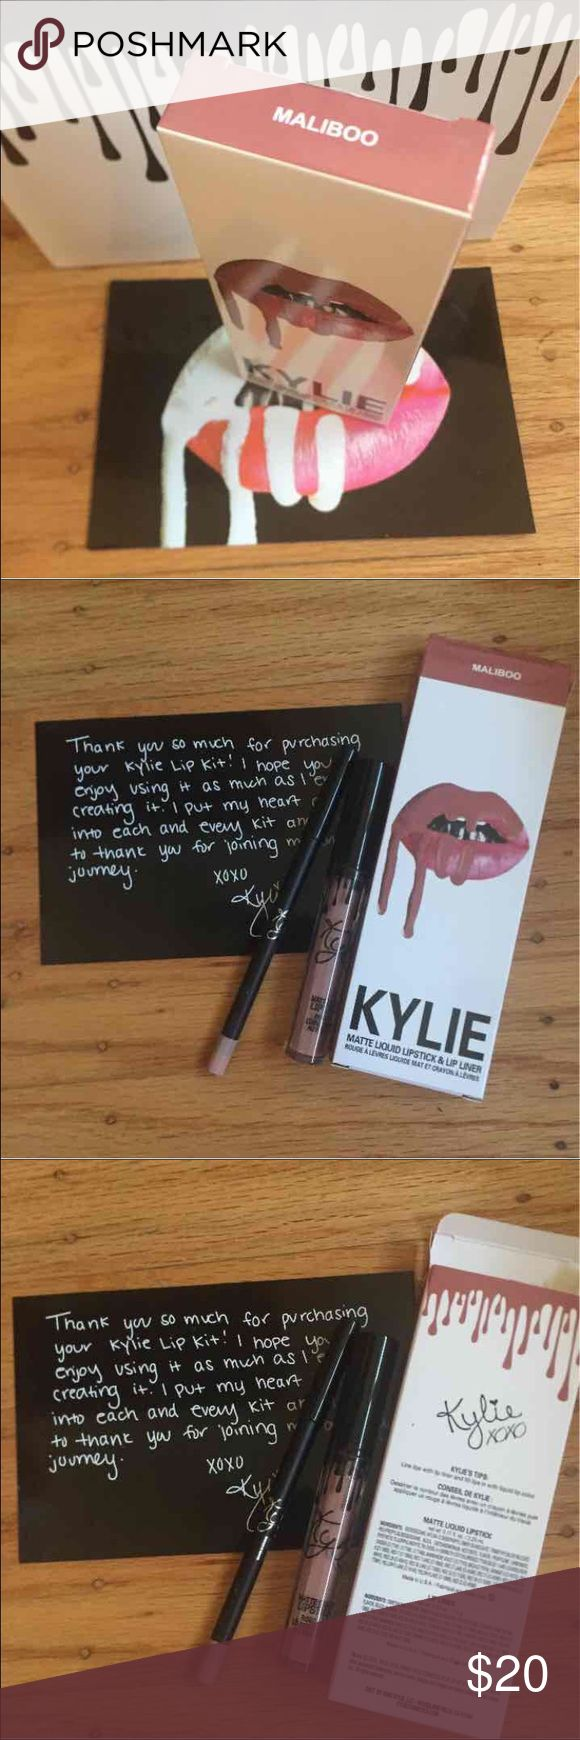 Maliboo Lip Kit By Kylie Cosmetics: 25+ Best Ideas About Kylie Jenner Lipstick On Pinterest